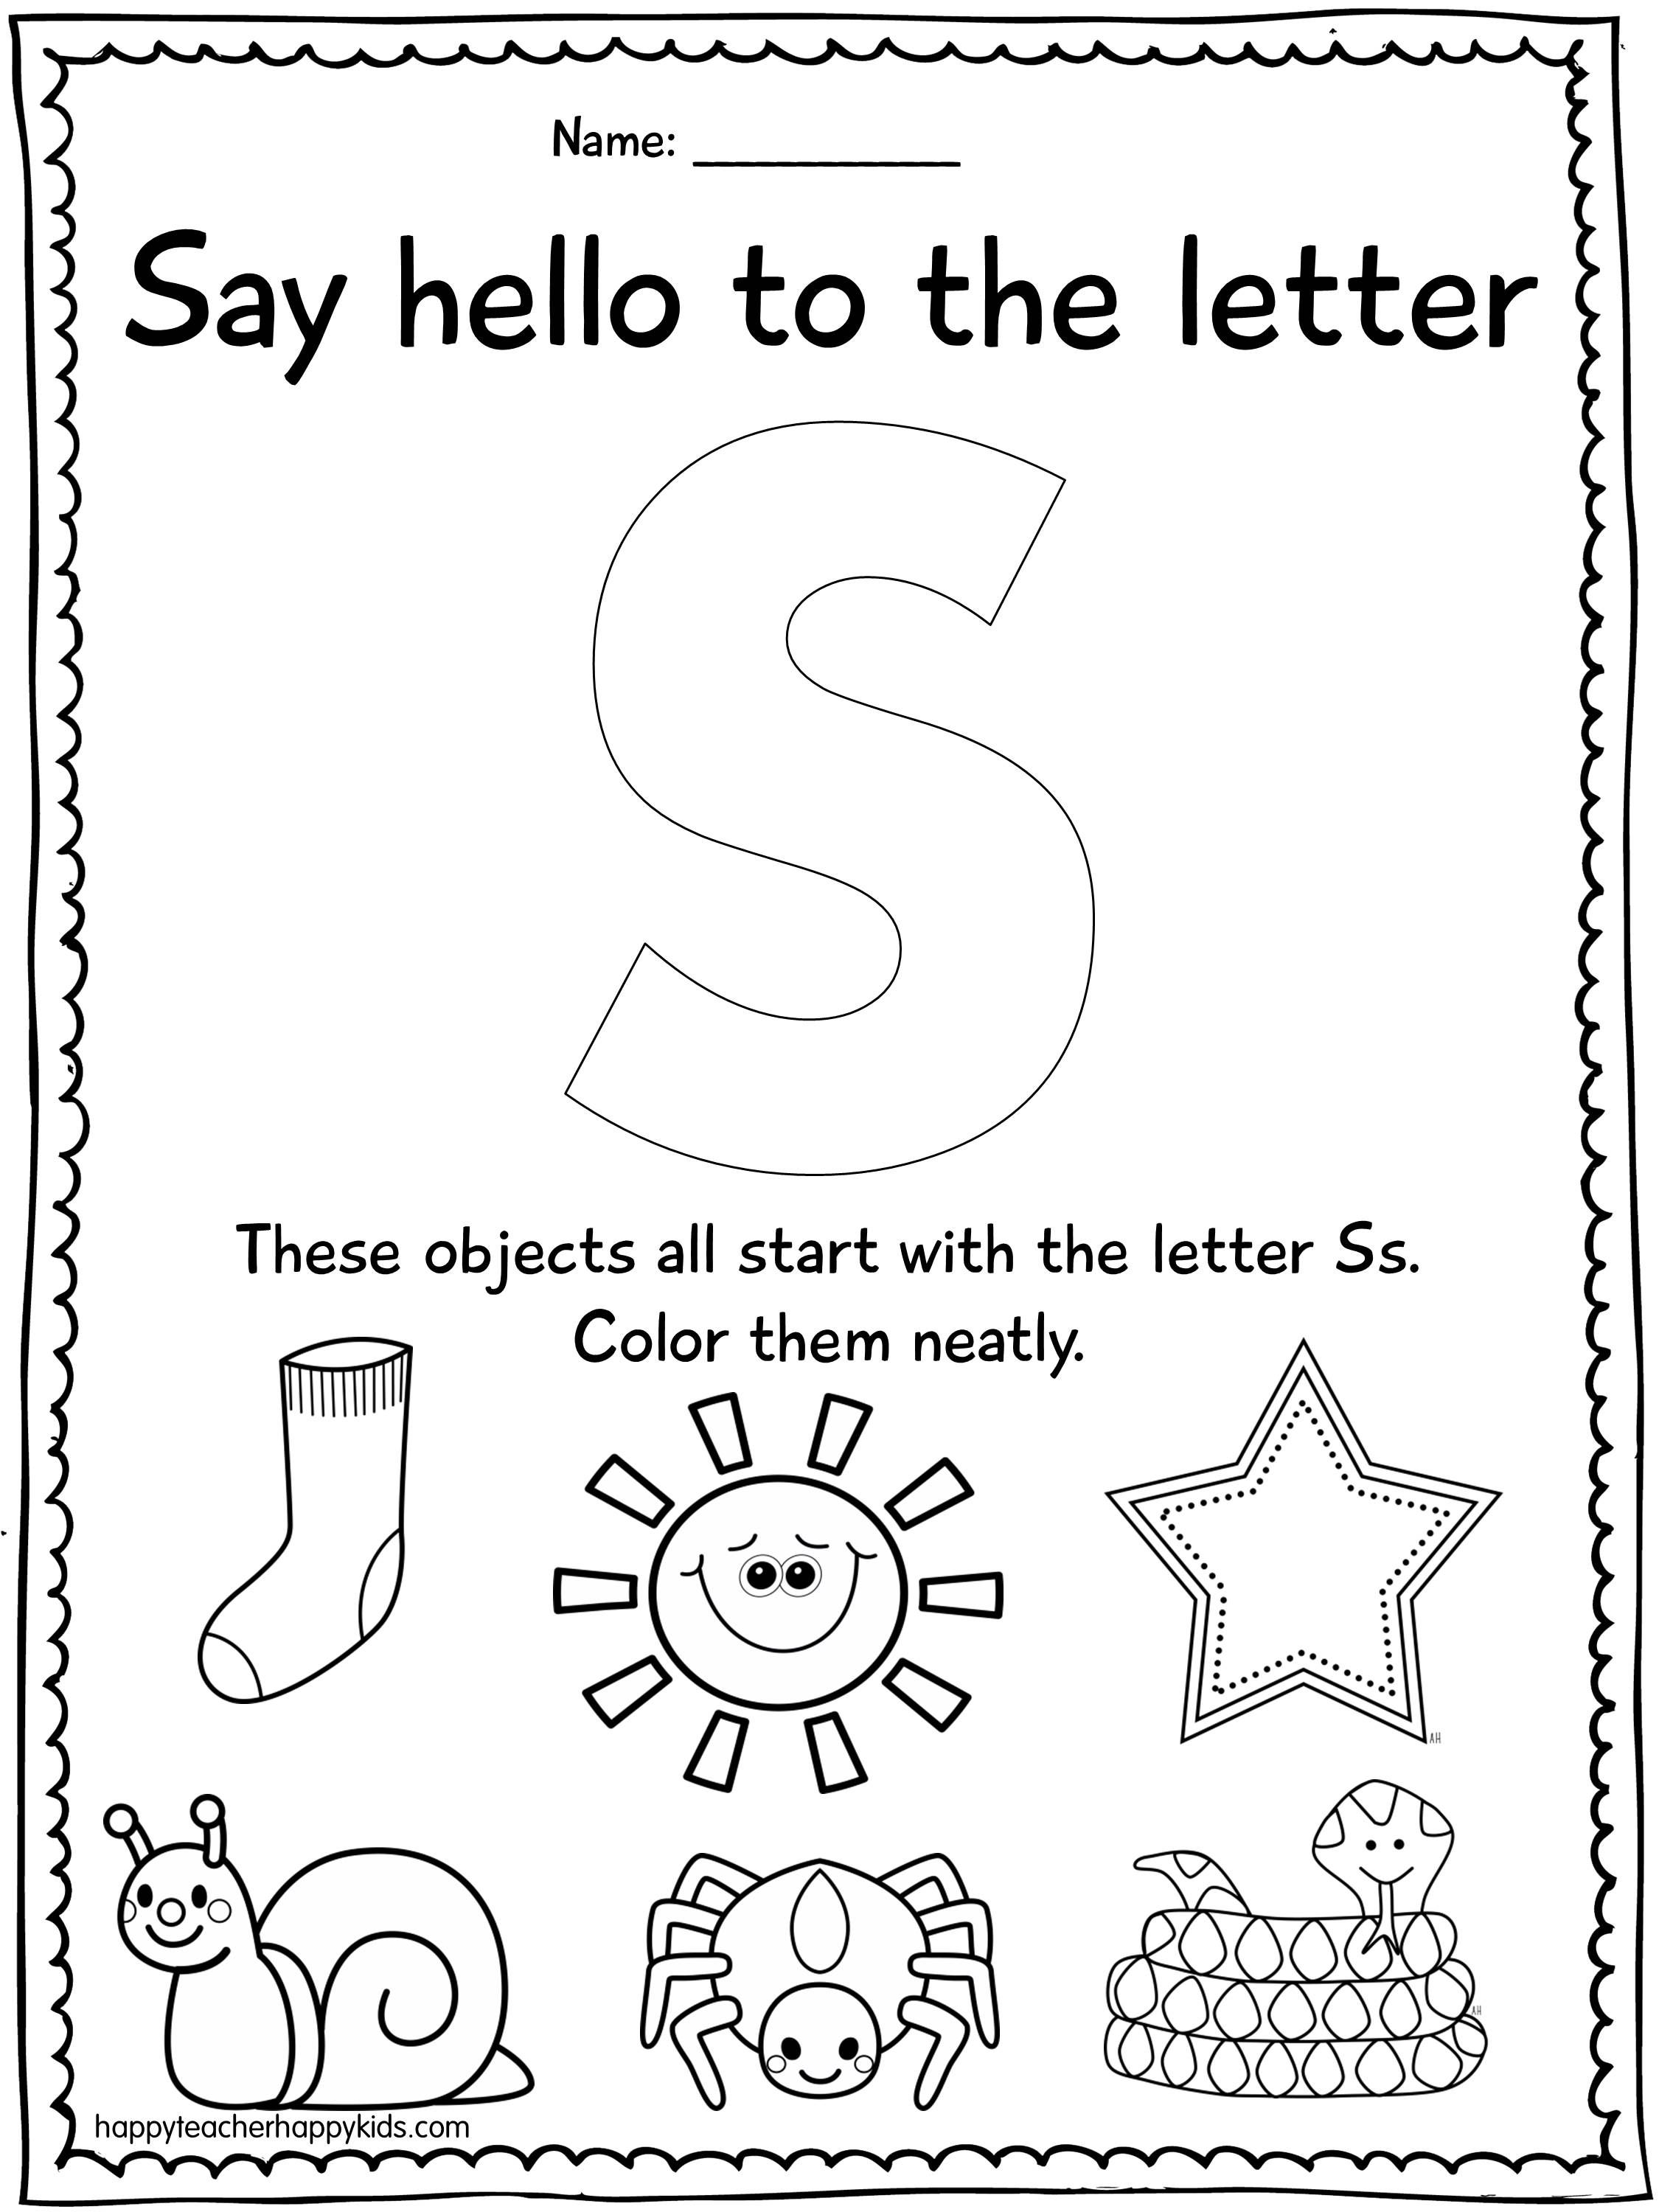 Alphabet activities for the letter S perfect for